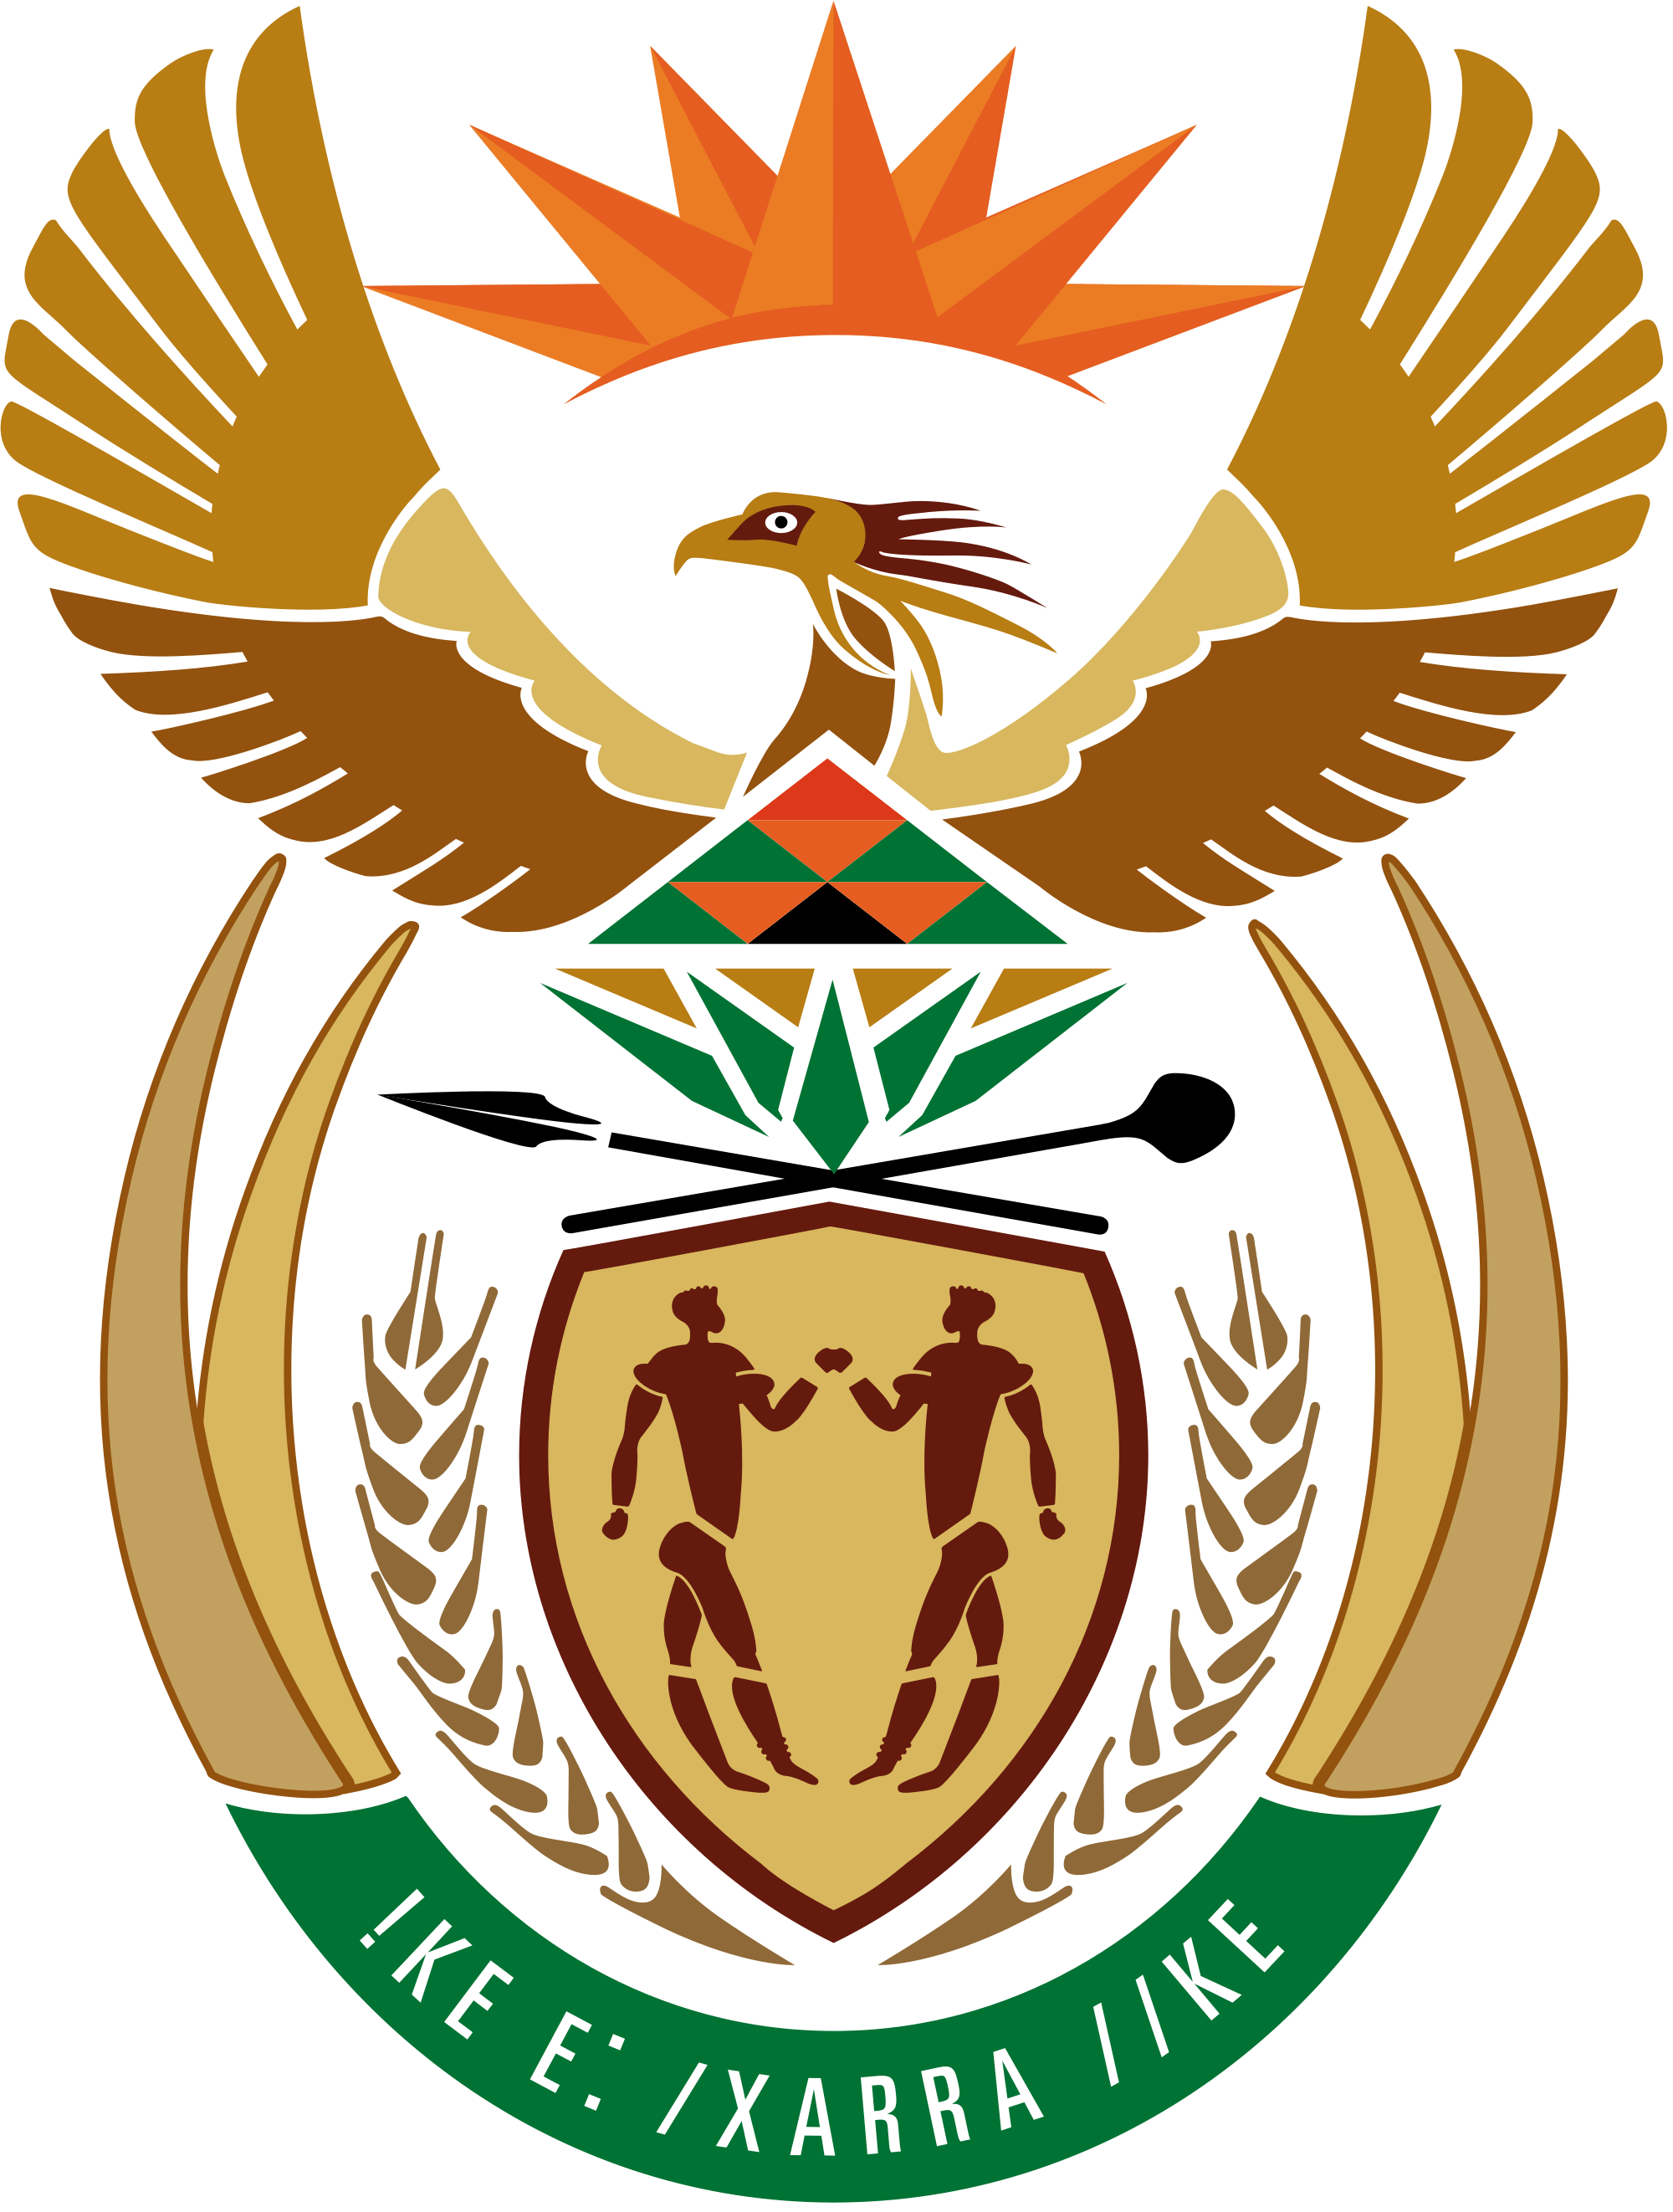 DEPARTMENT-OF-MINERALS-AND-ENERGY-REPUBLIC-OF-SOUTH-AFRICA-1-1